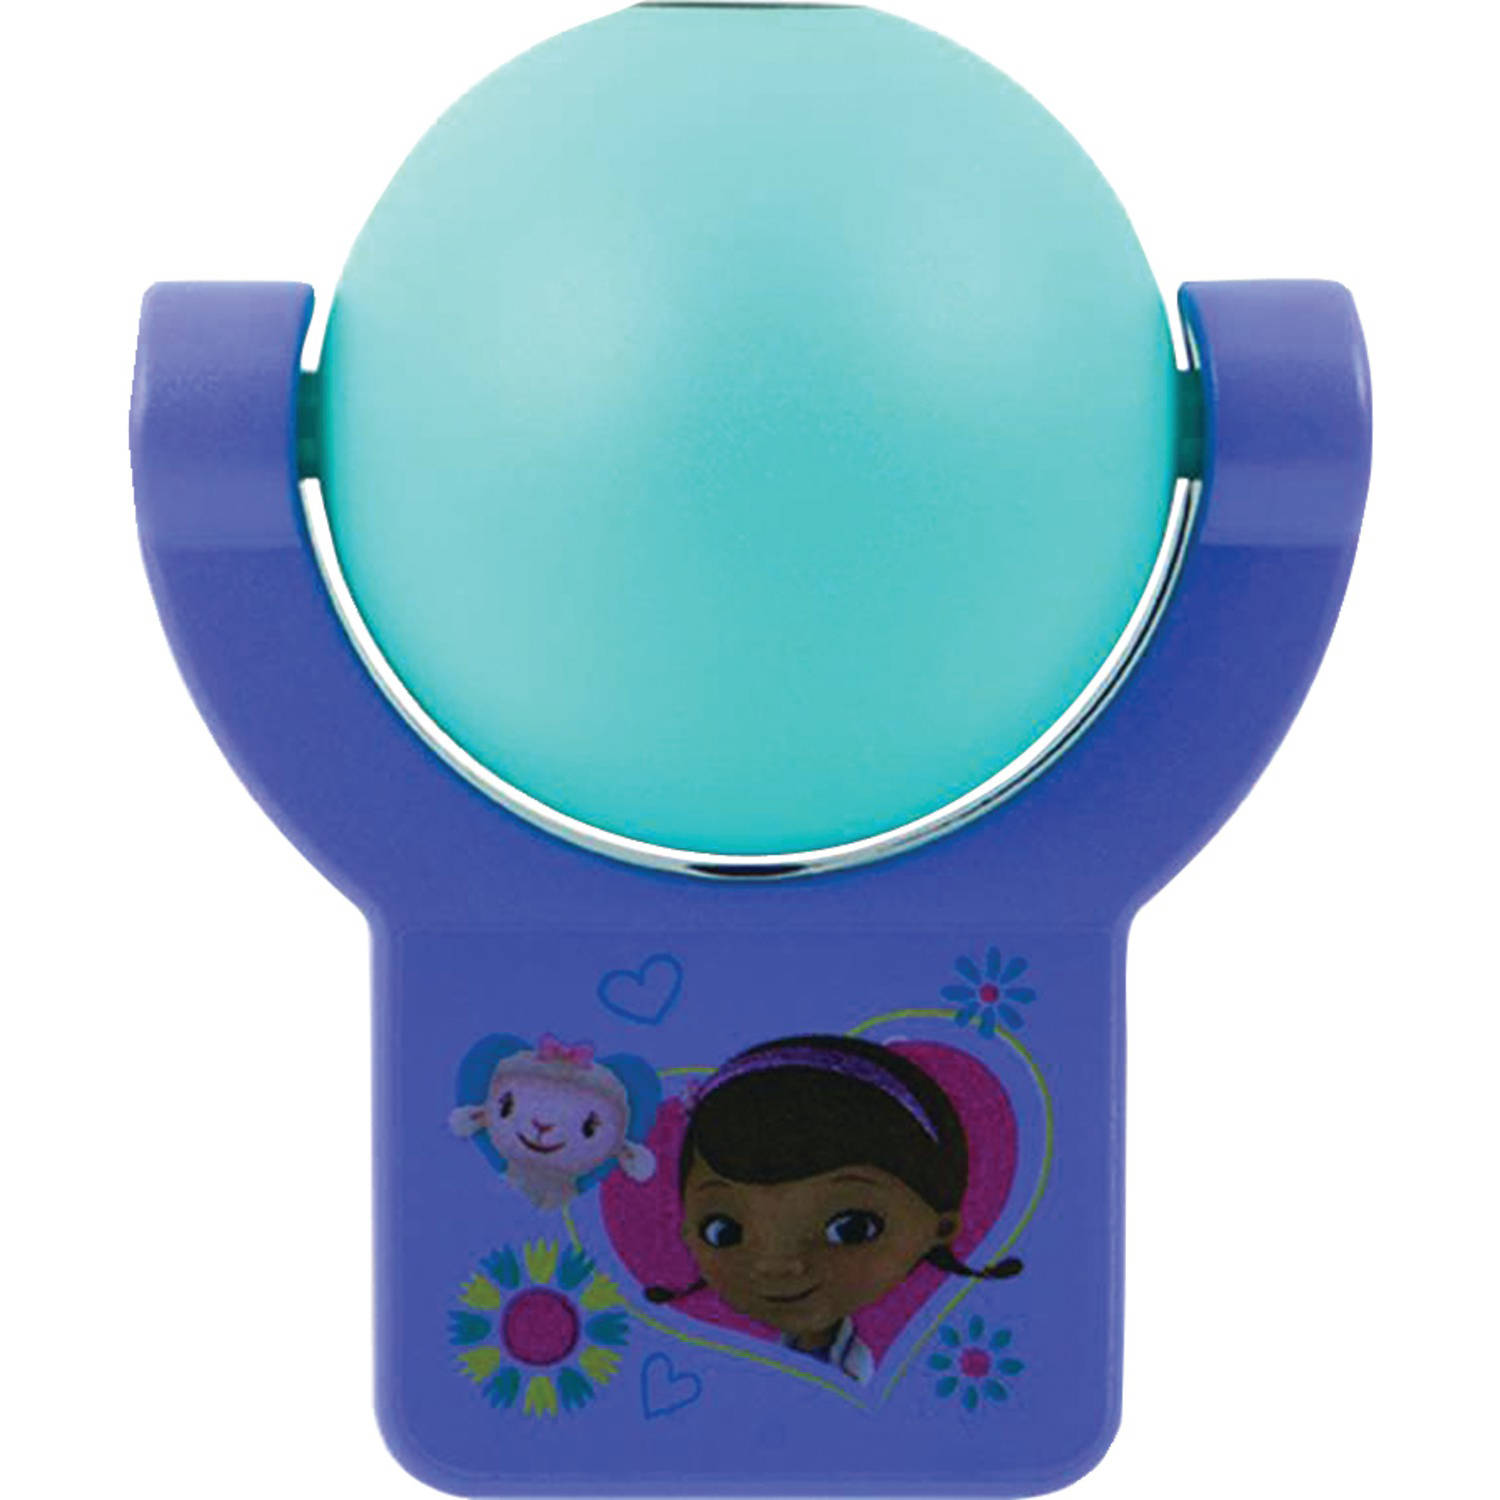 Projectables Disney Doc McStuffins LED Plug-In Night Light, 14530